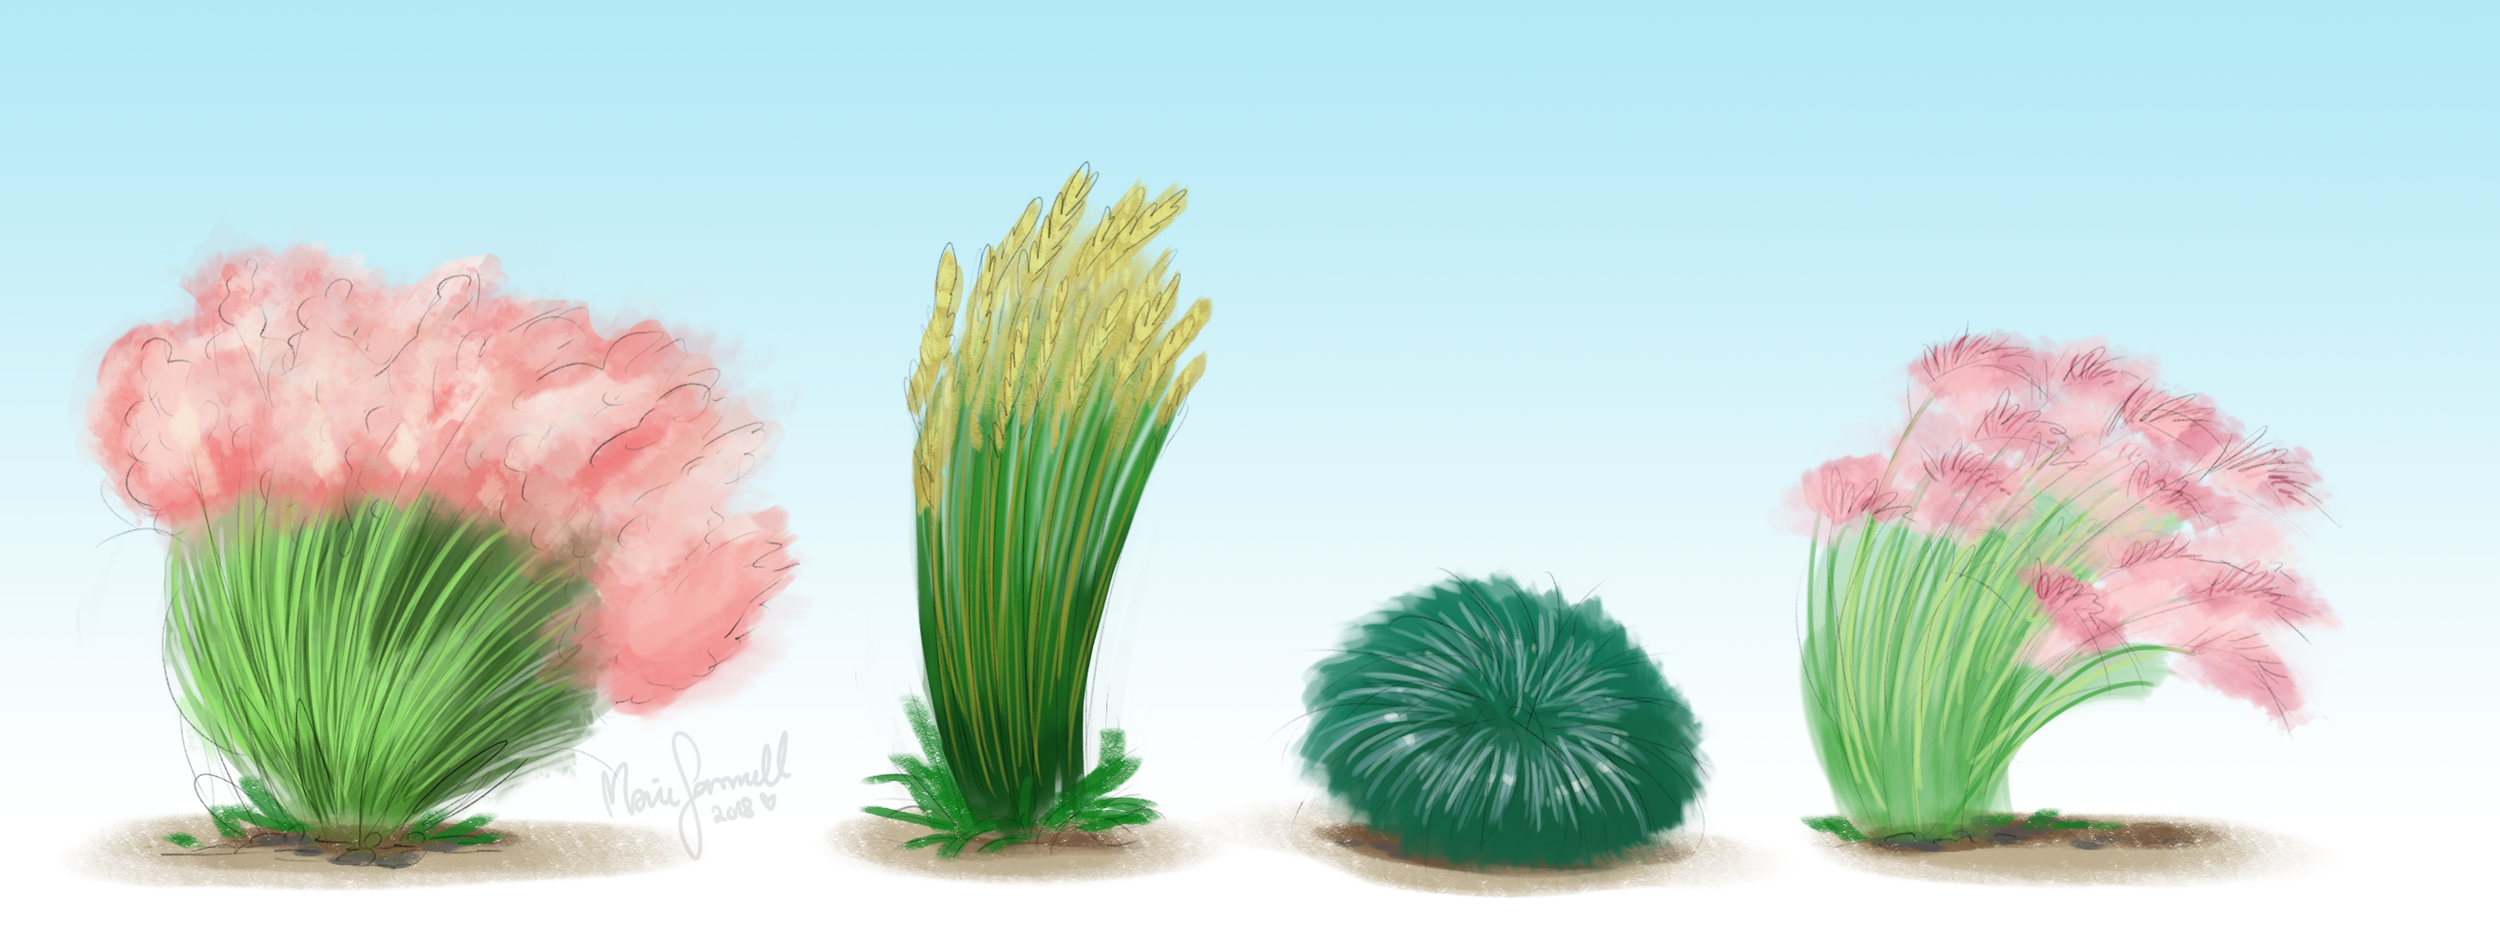 Early concept   Different types of desert grass